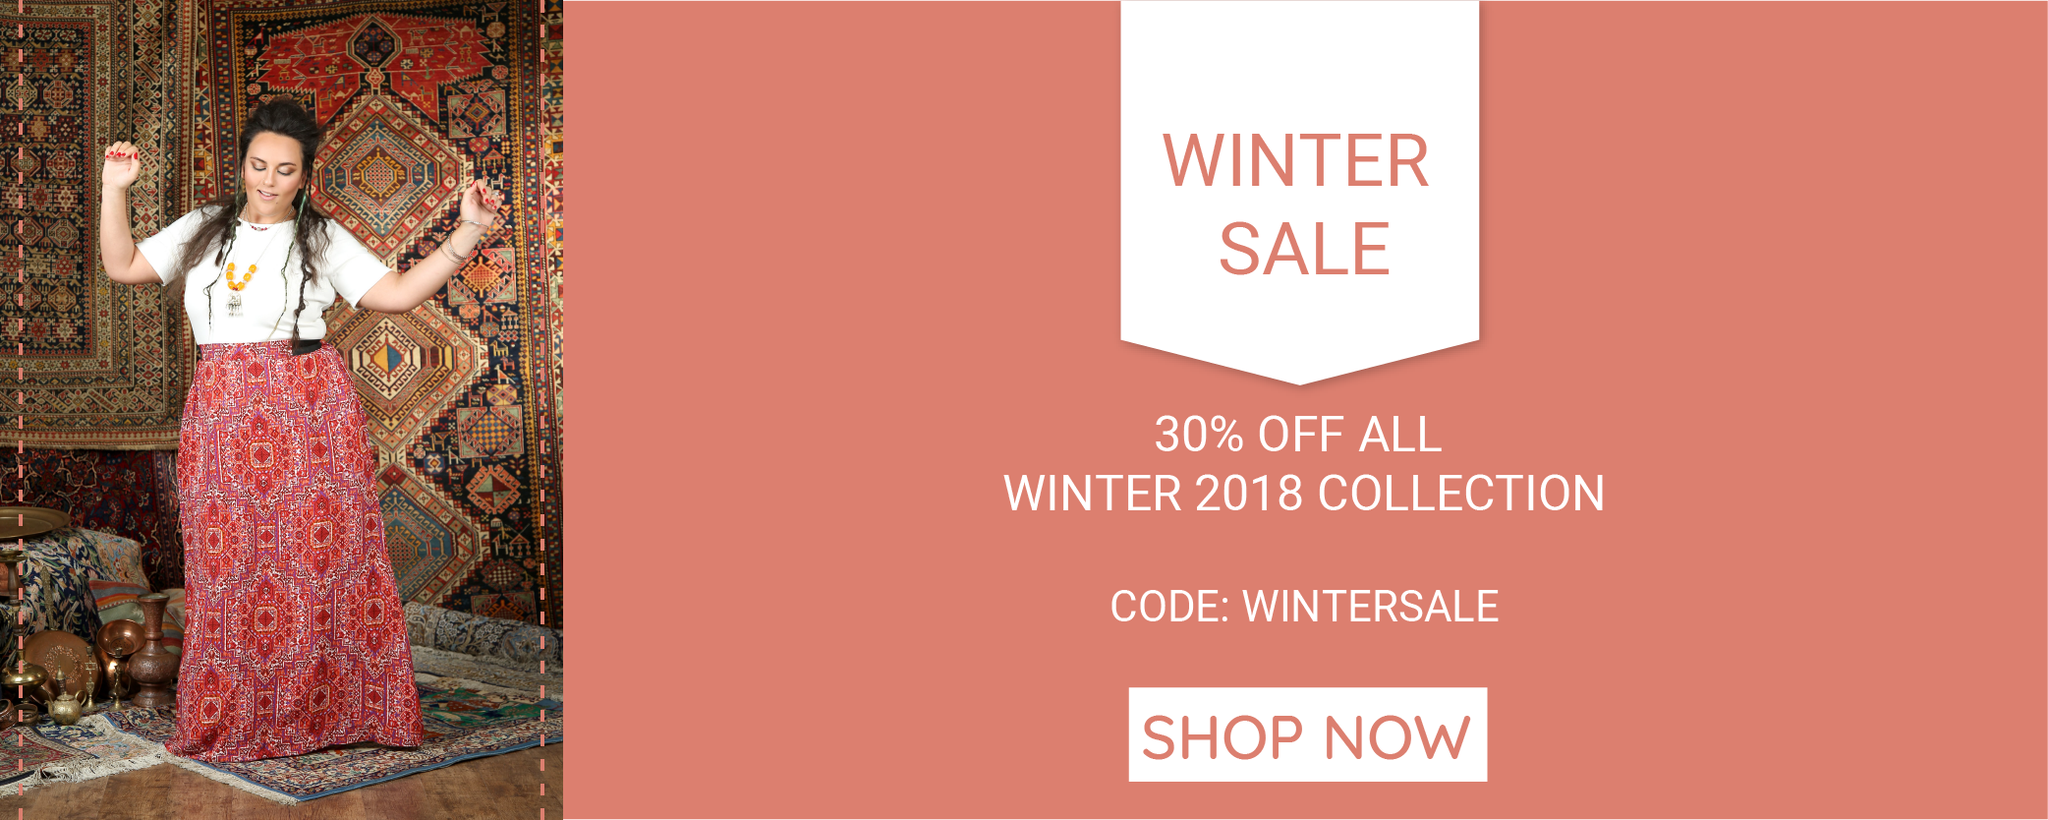 Shani Segev, Winter Sale